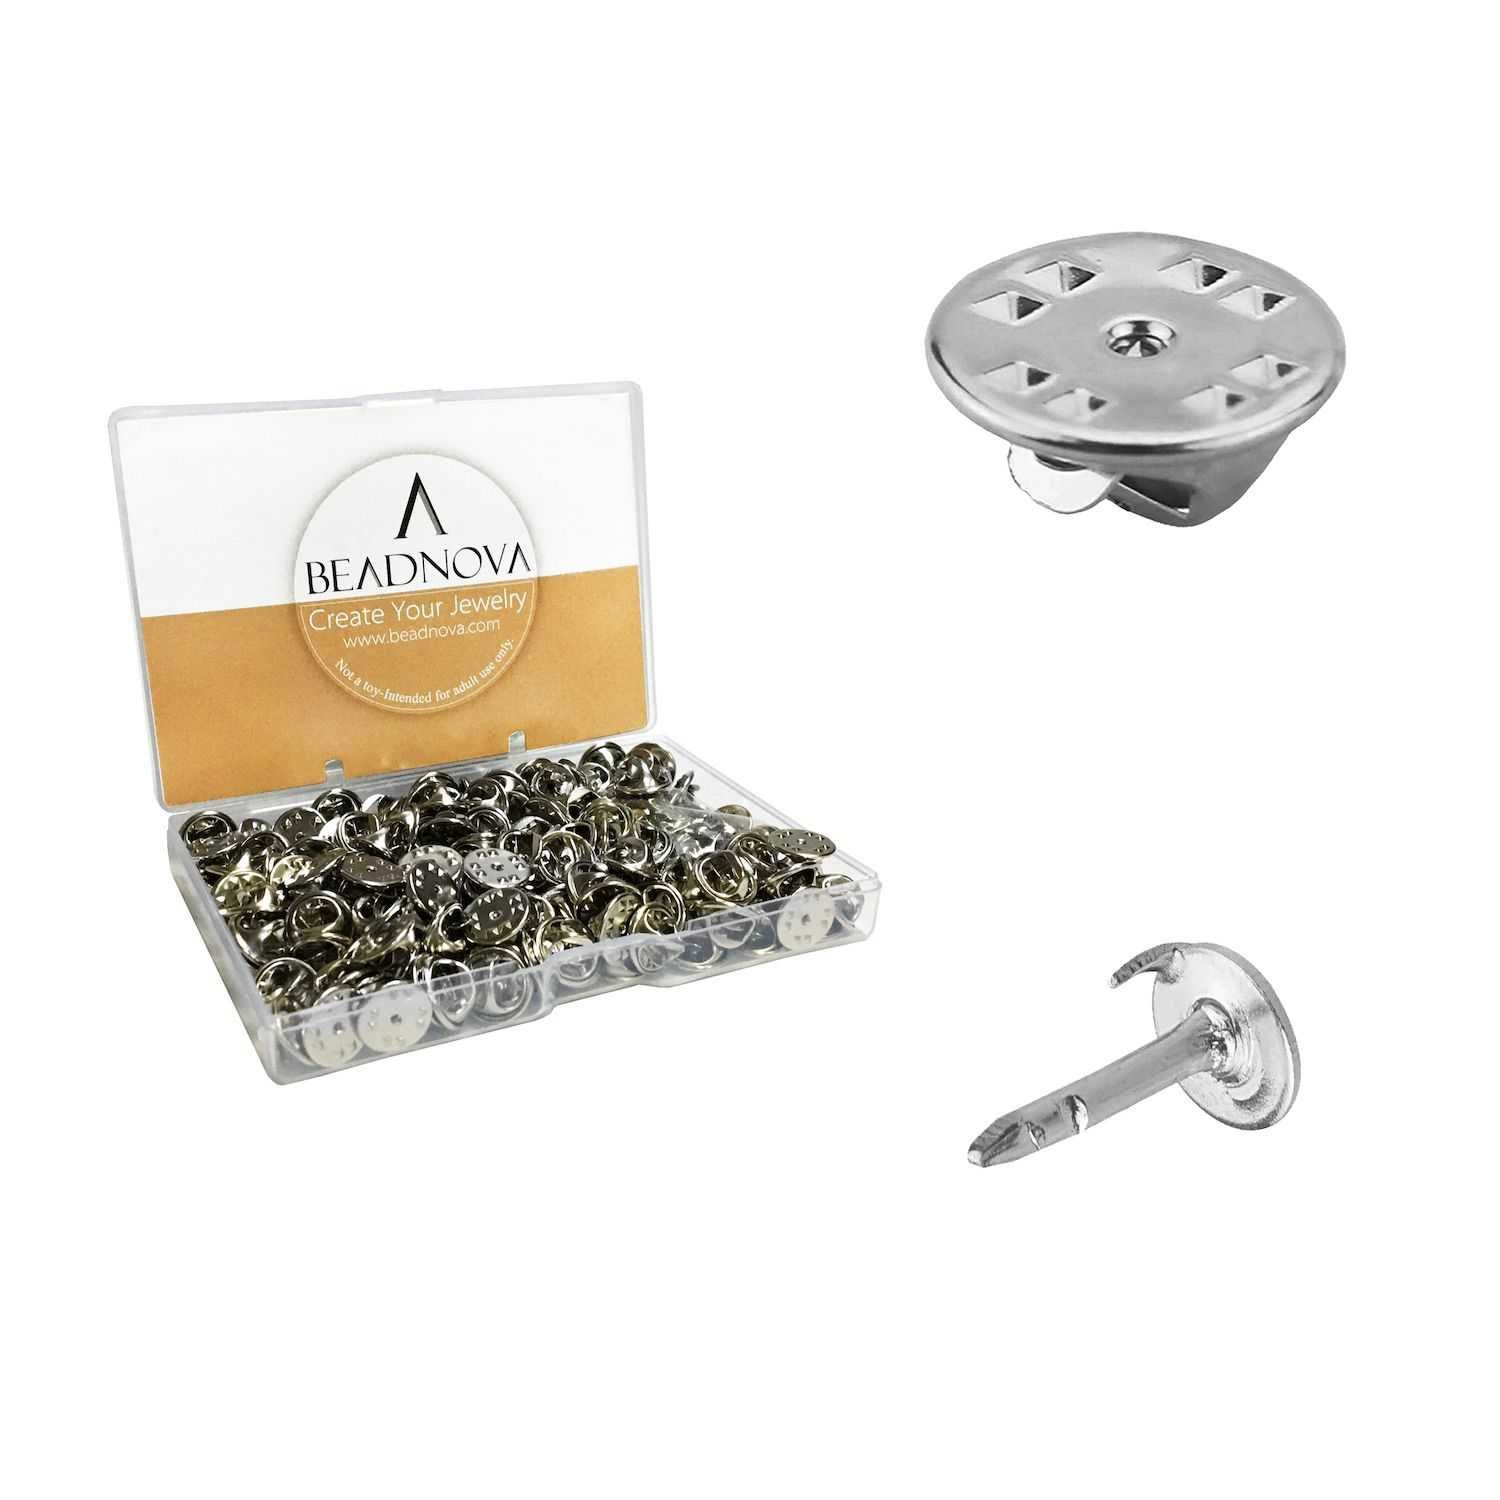 BEADNOVA Butterfly Pin Backs Clutch Tie Tacks Pin Backs for Lapel Pins Blank Pins with Pin Backing (Silver, 150 Sets)